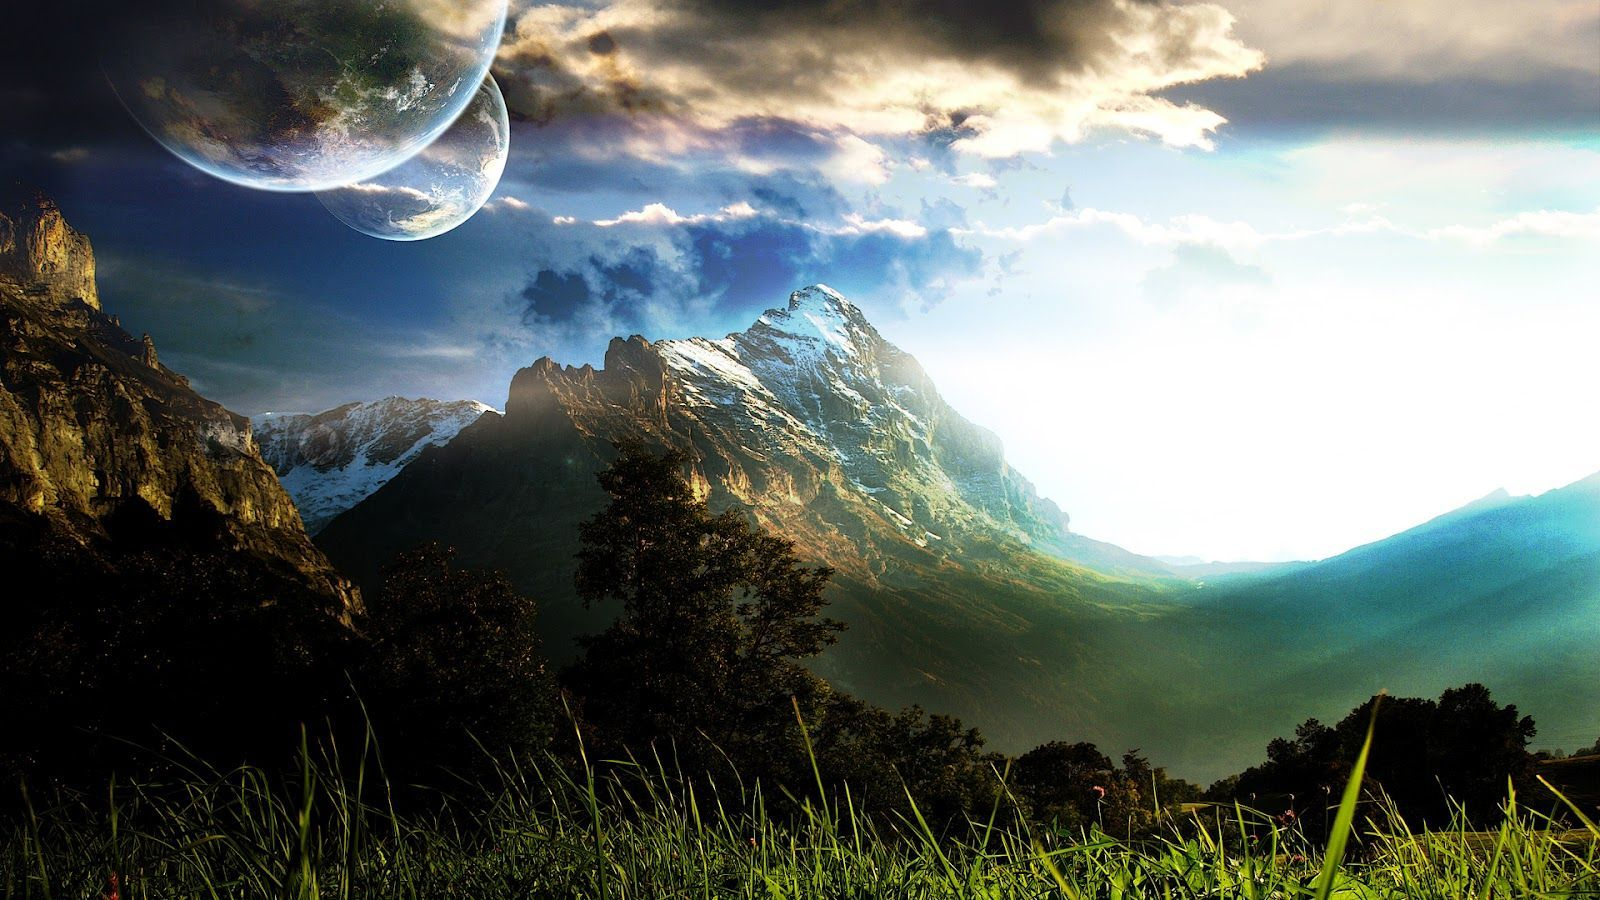 Providing You Widescreen High Defination Hd Wallpapers For Desktop Widescreen Choose One Of The Best Wal Landscape Wallpaper Nature Wallpaper Planets Wallpaper